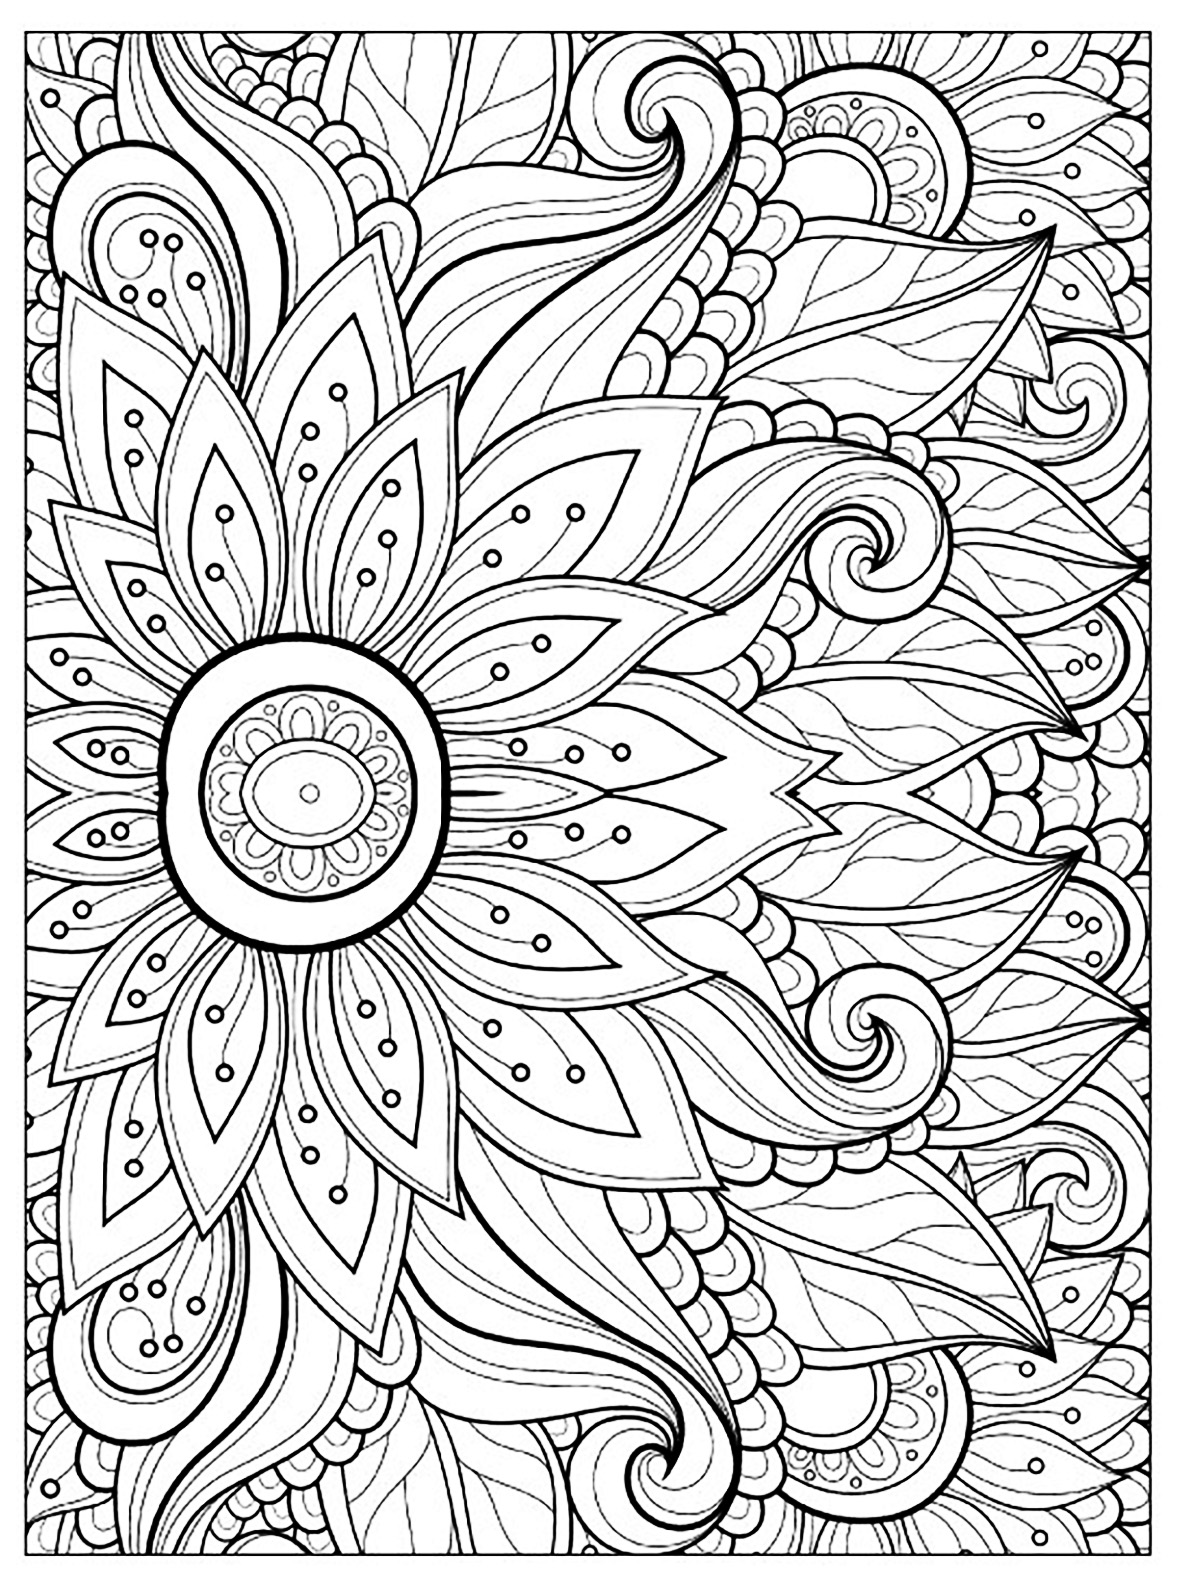 flower coloring sheets free flowers to download for free flowers kids coloring pages flower coloring sheets free